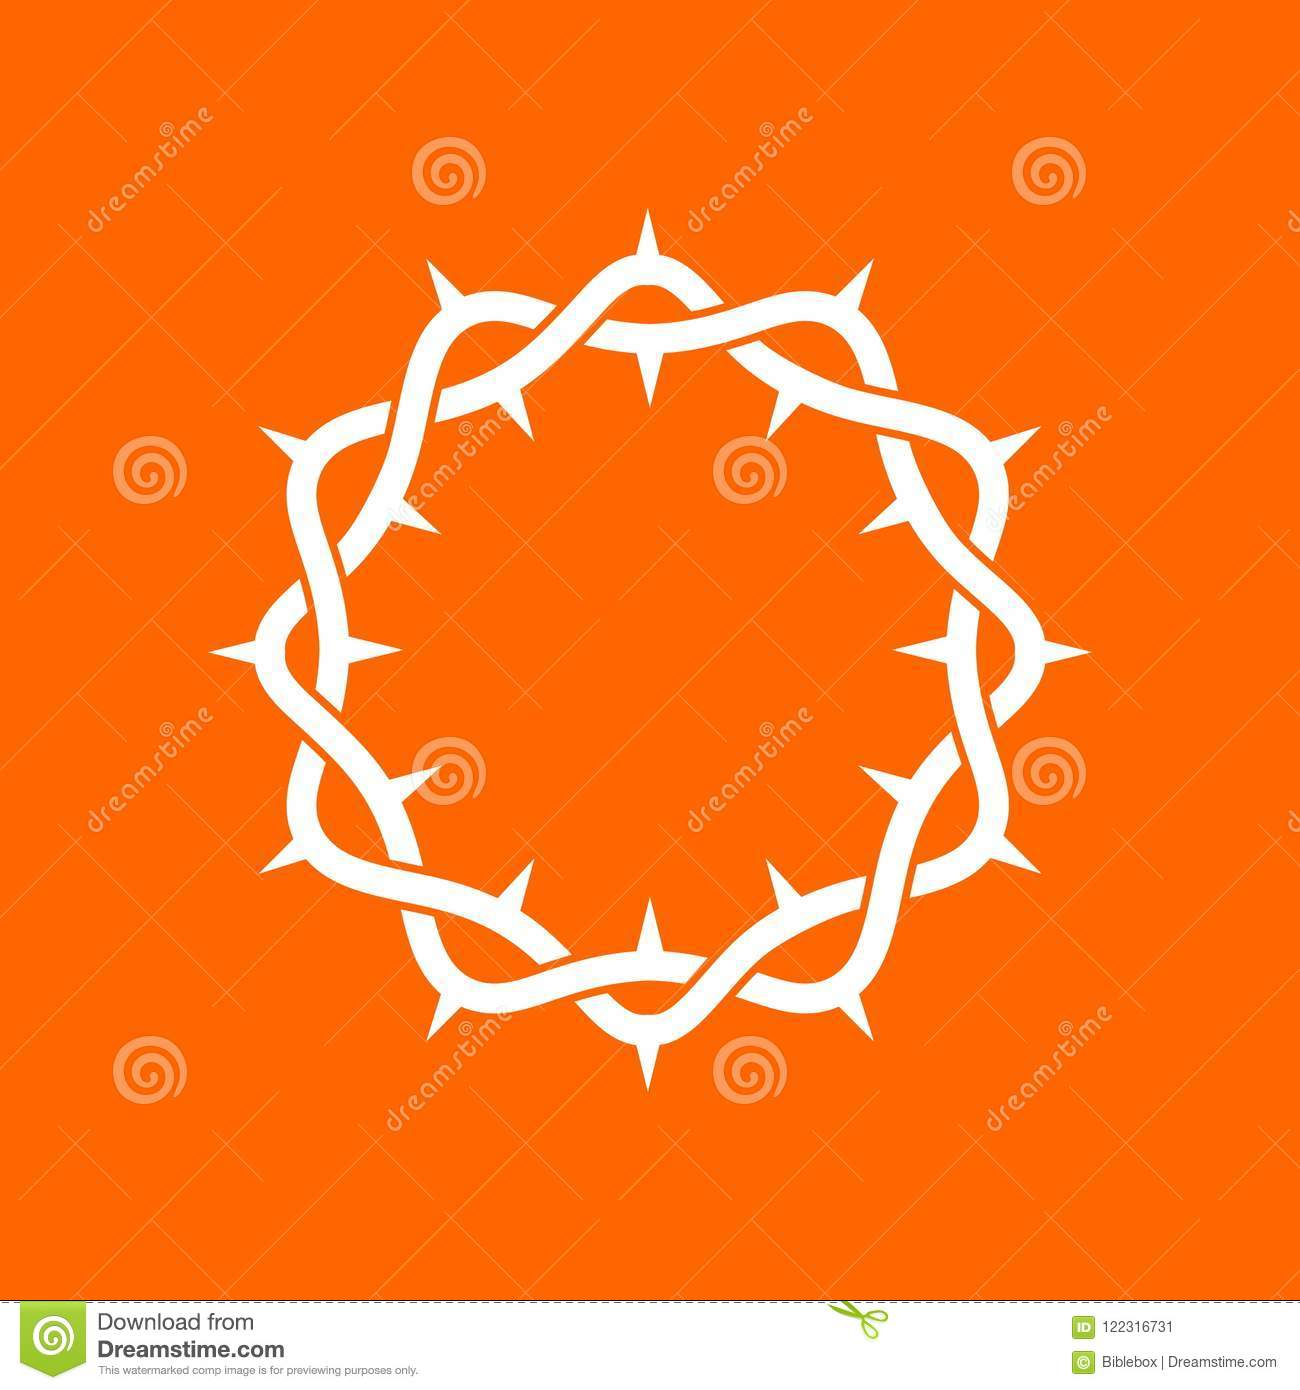 The Crown Of Thorns Of The Lord And Savior Jesus Christ The Symbol